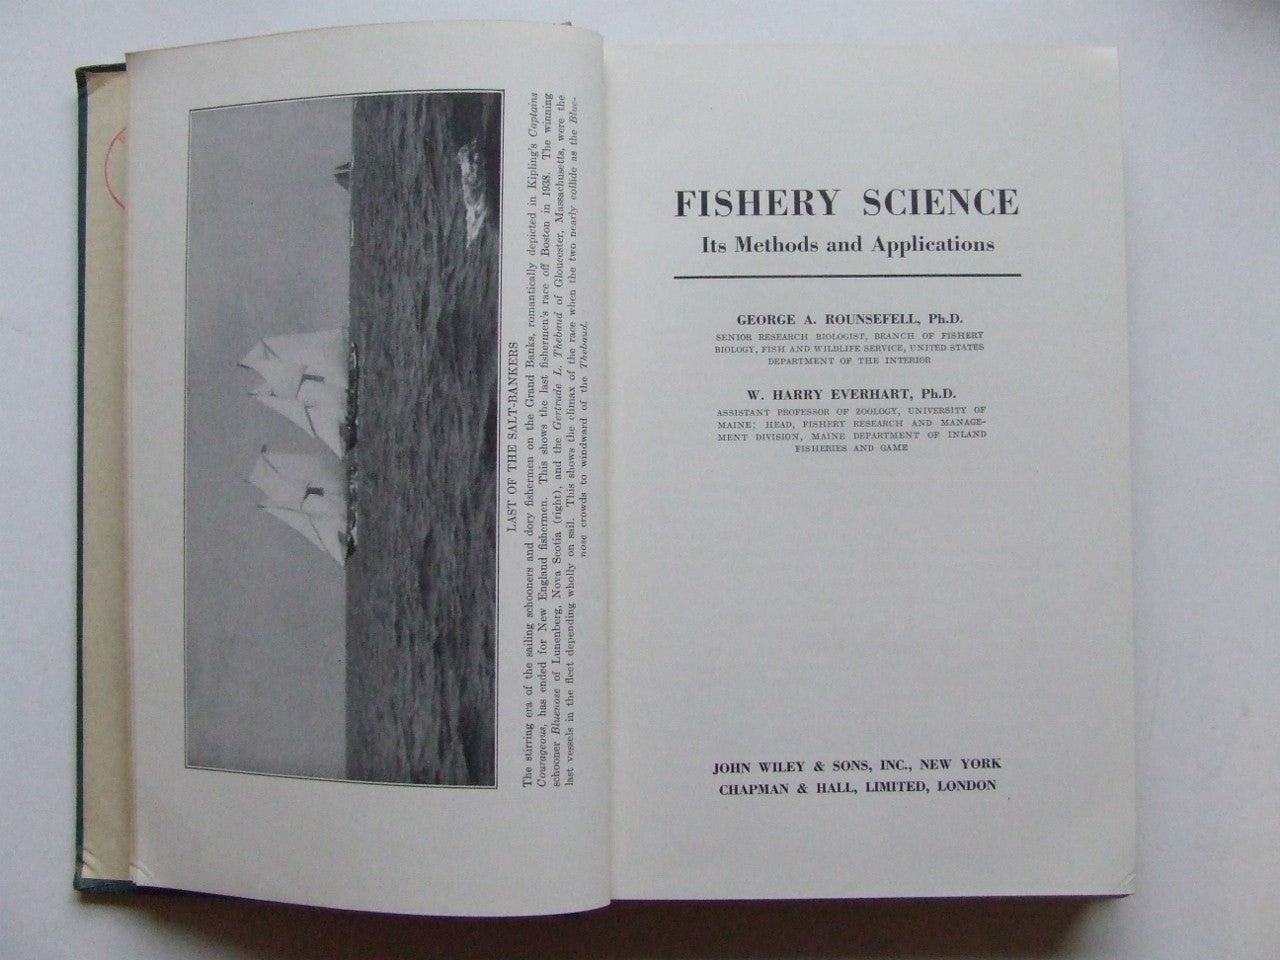 Fishery Science, its methods and applications